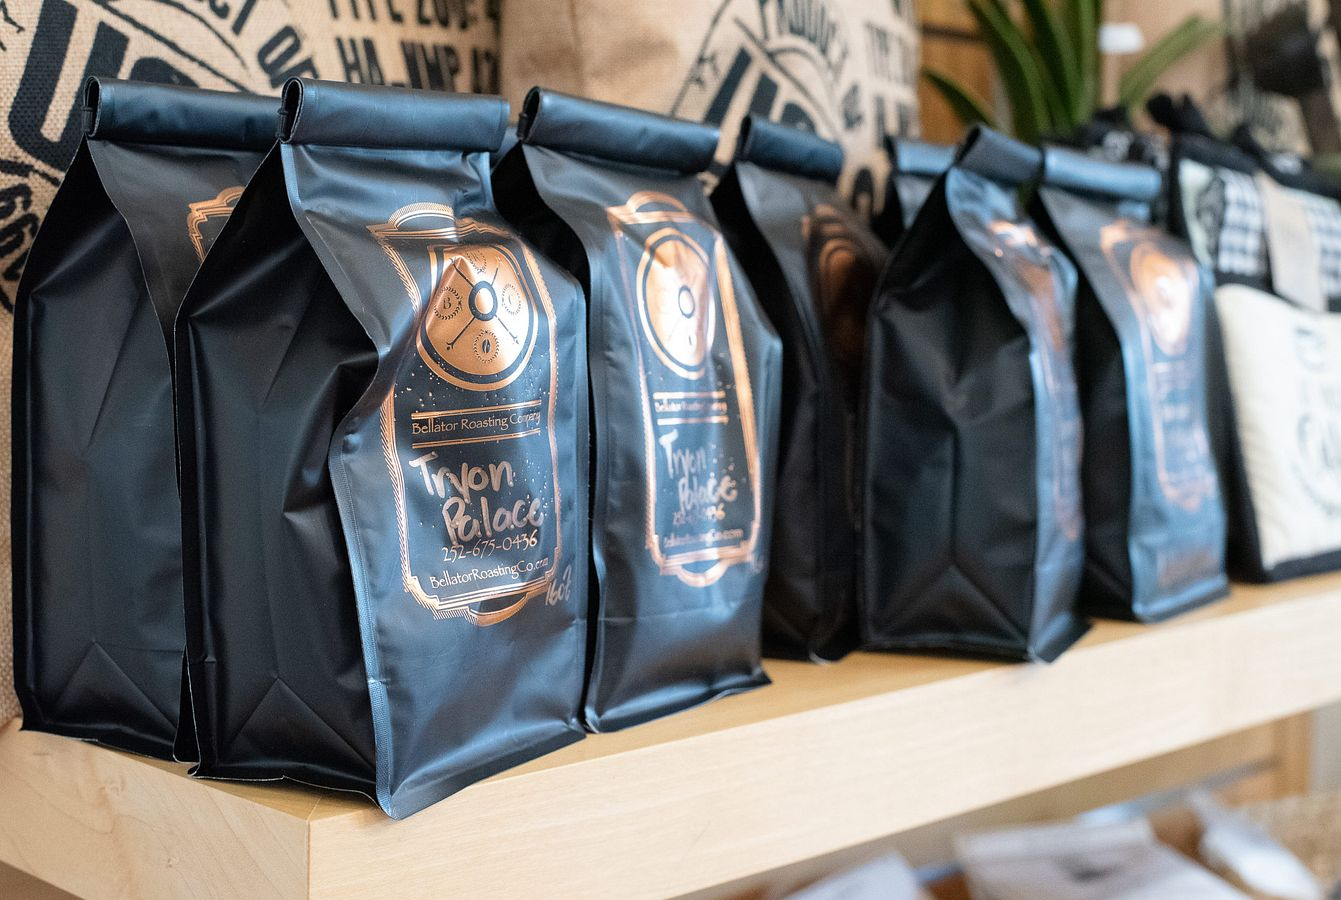 Tryon Palace Coffee Blend from Bellator Roasters